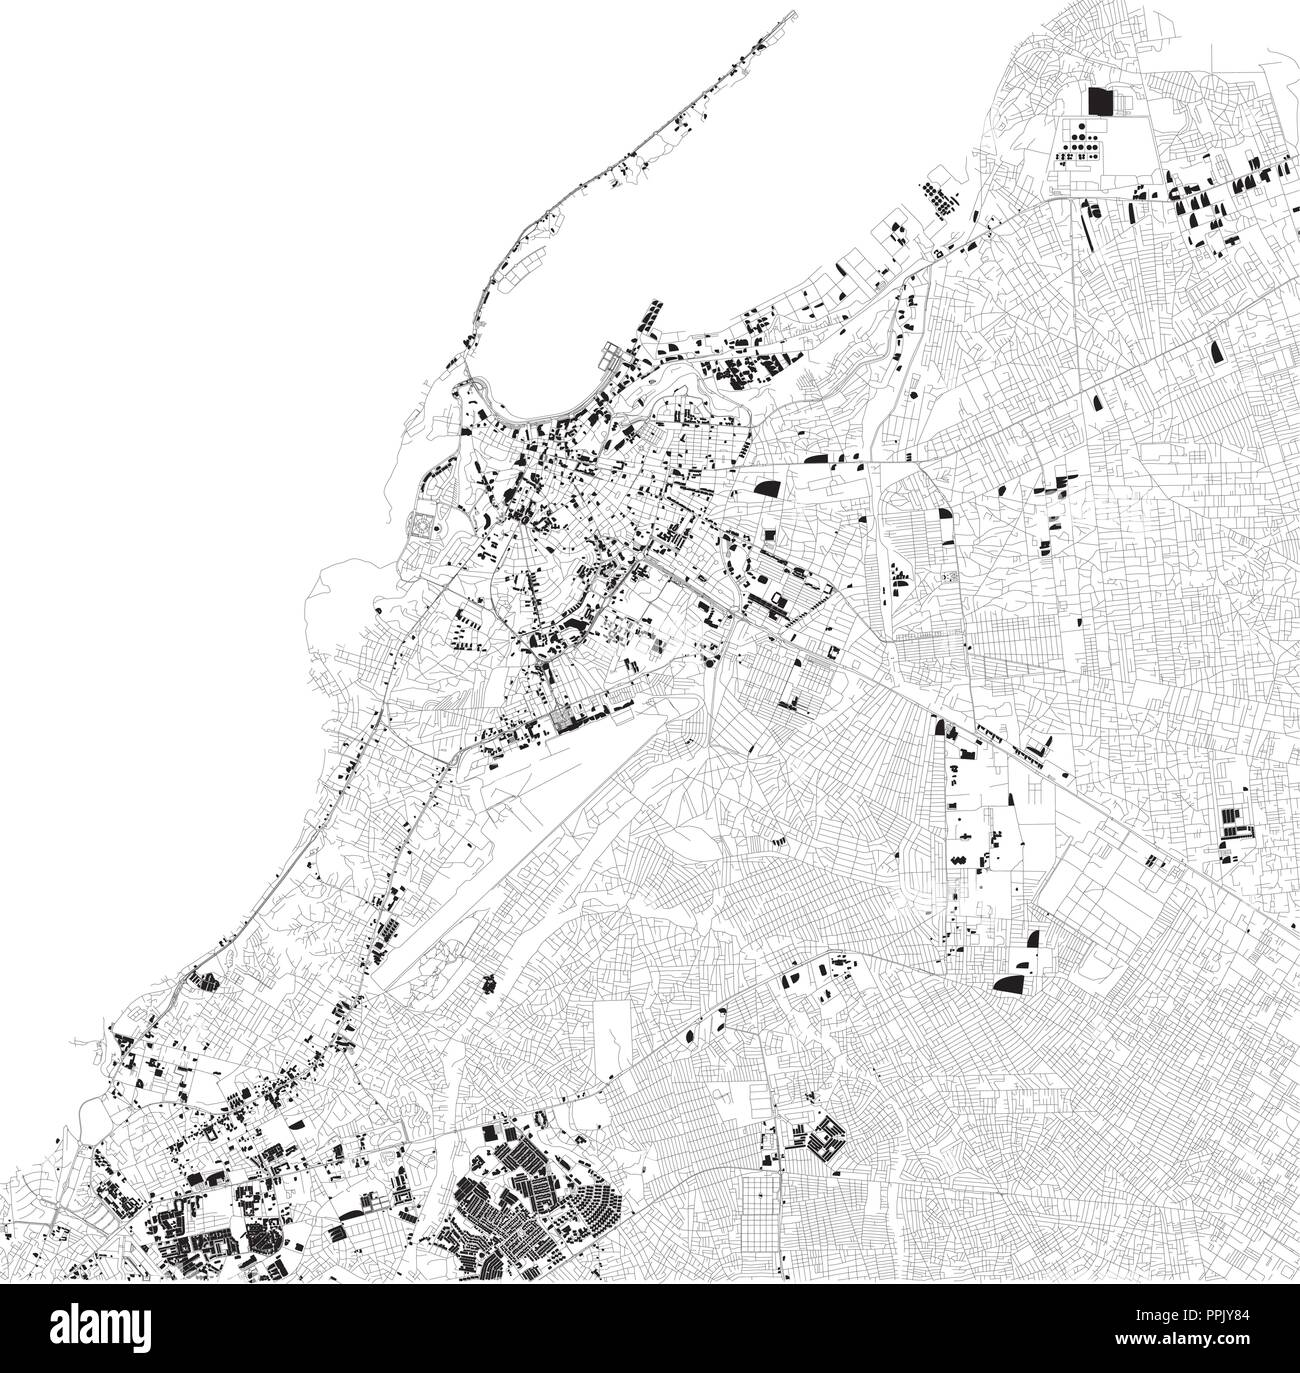 Map of Luanda, satellite view, black and white map. Street directory and city map. Angola. Africa - Stock Image